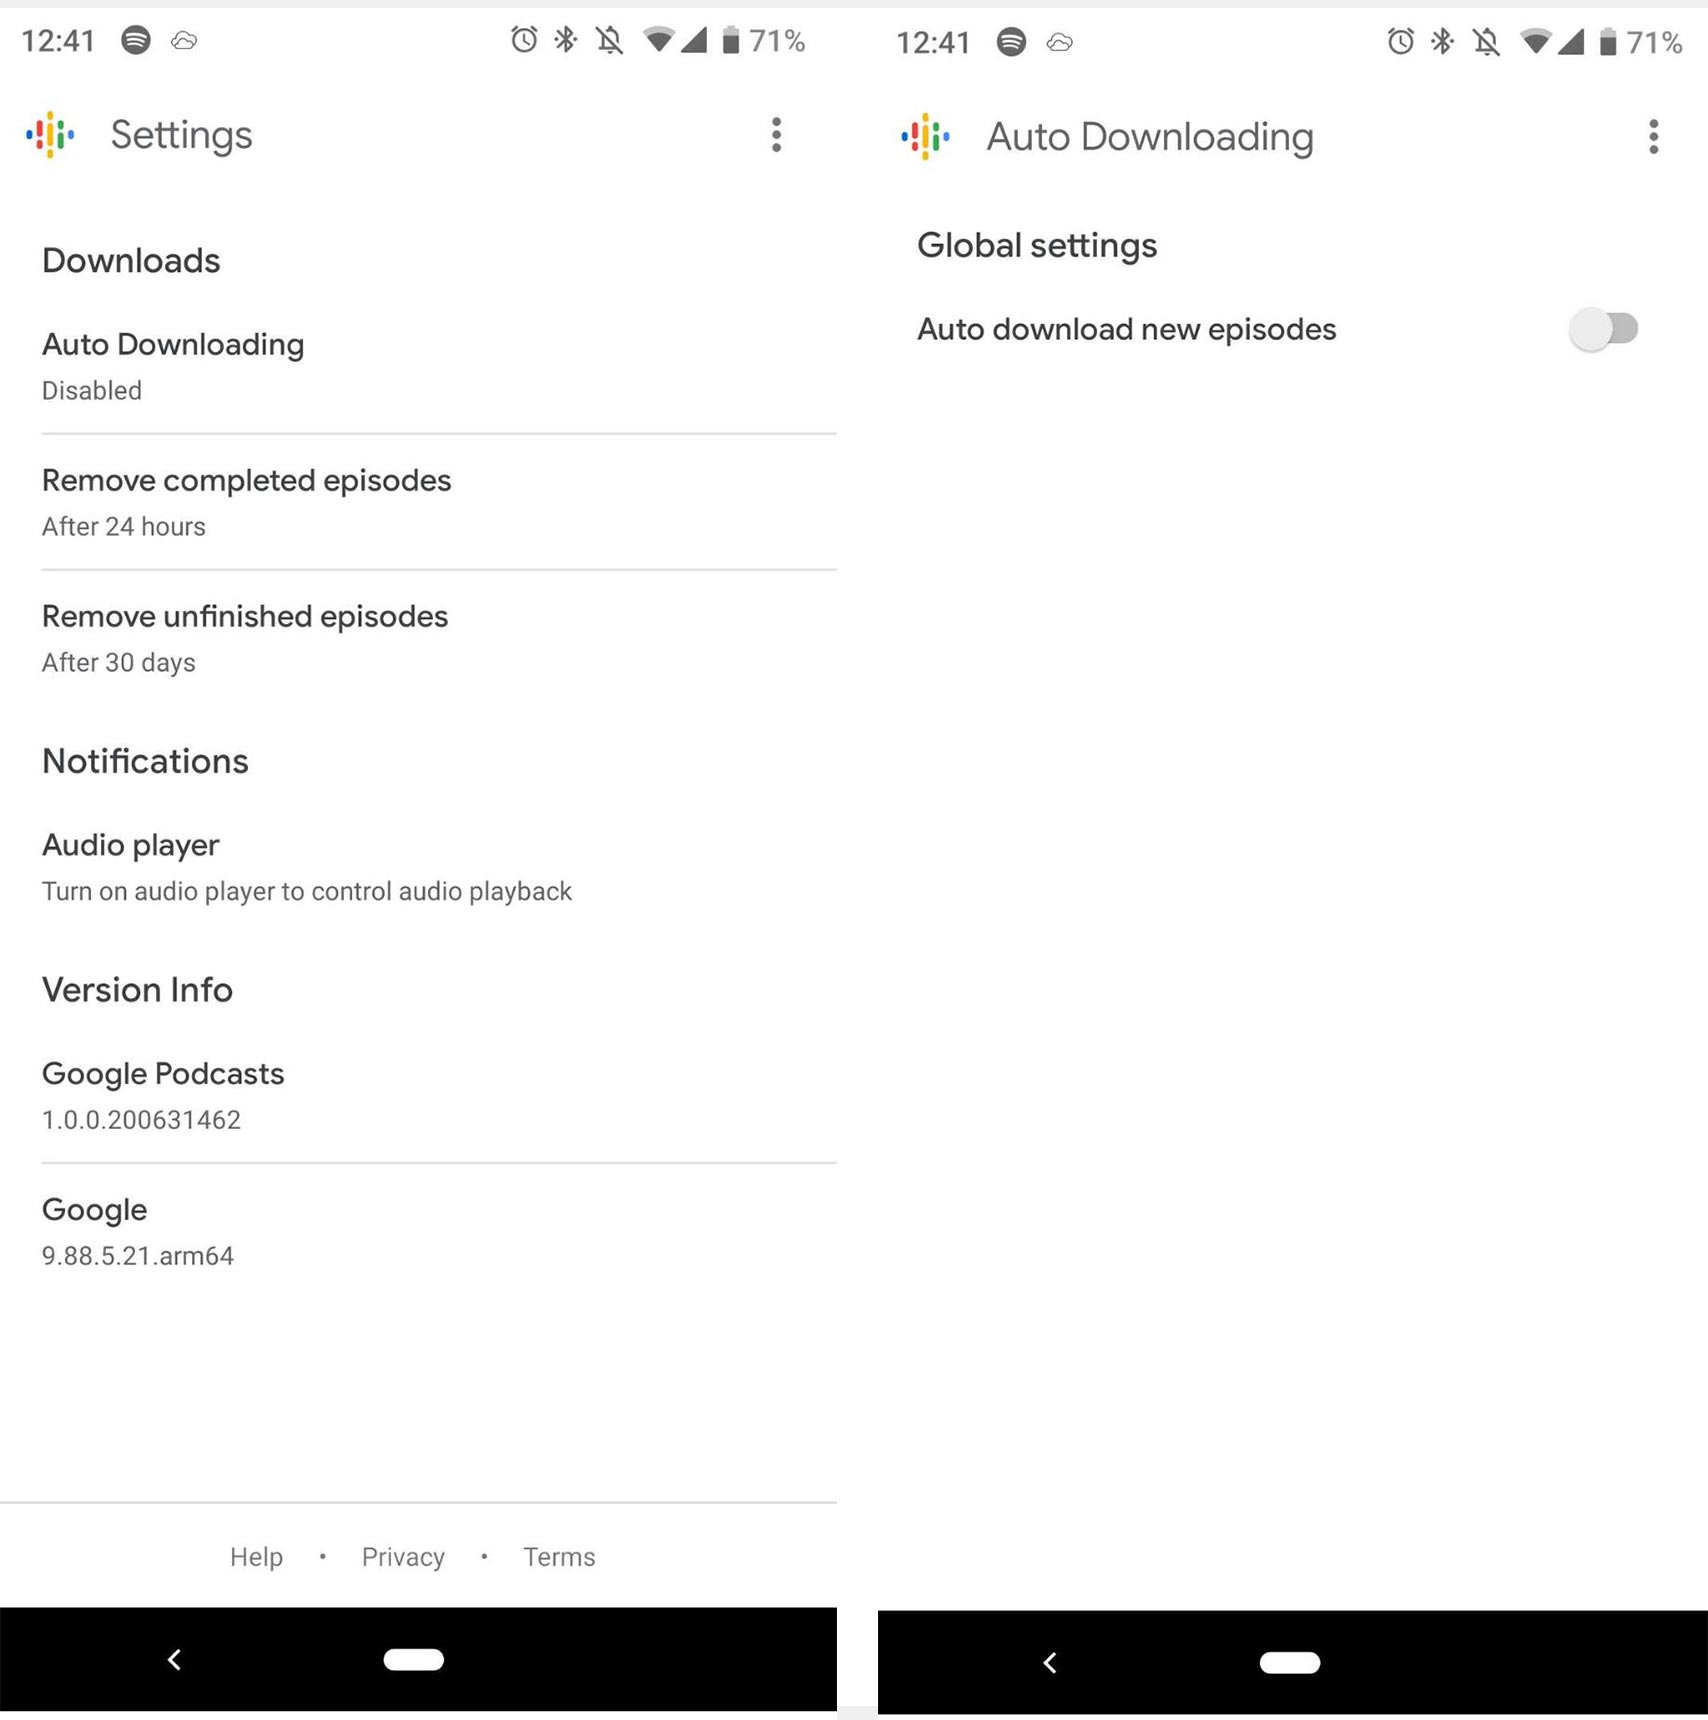 Google Podcasts auto download update